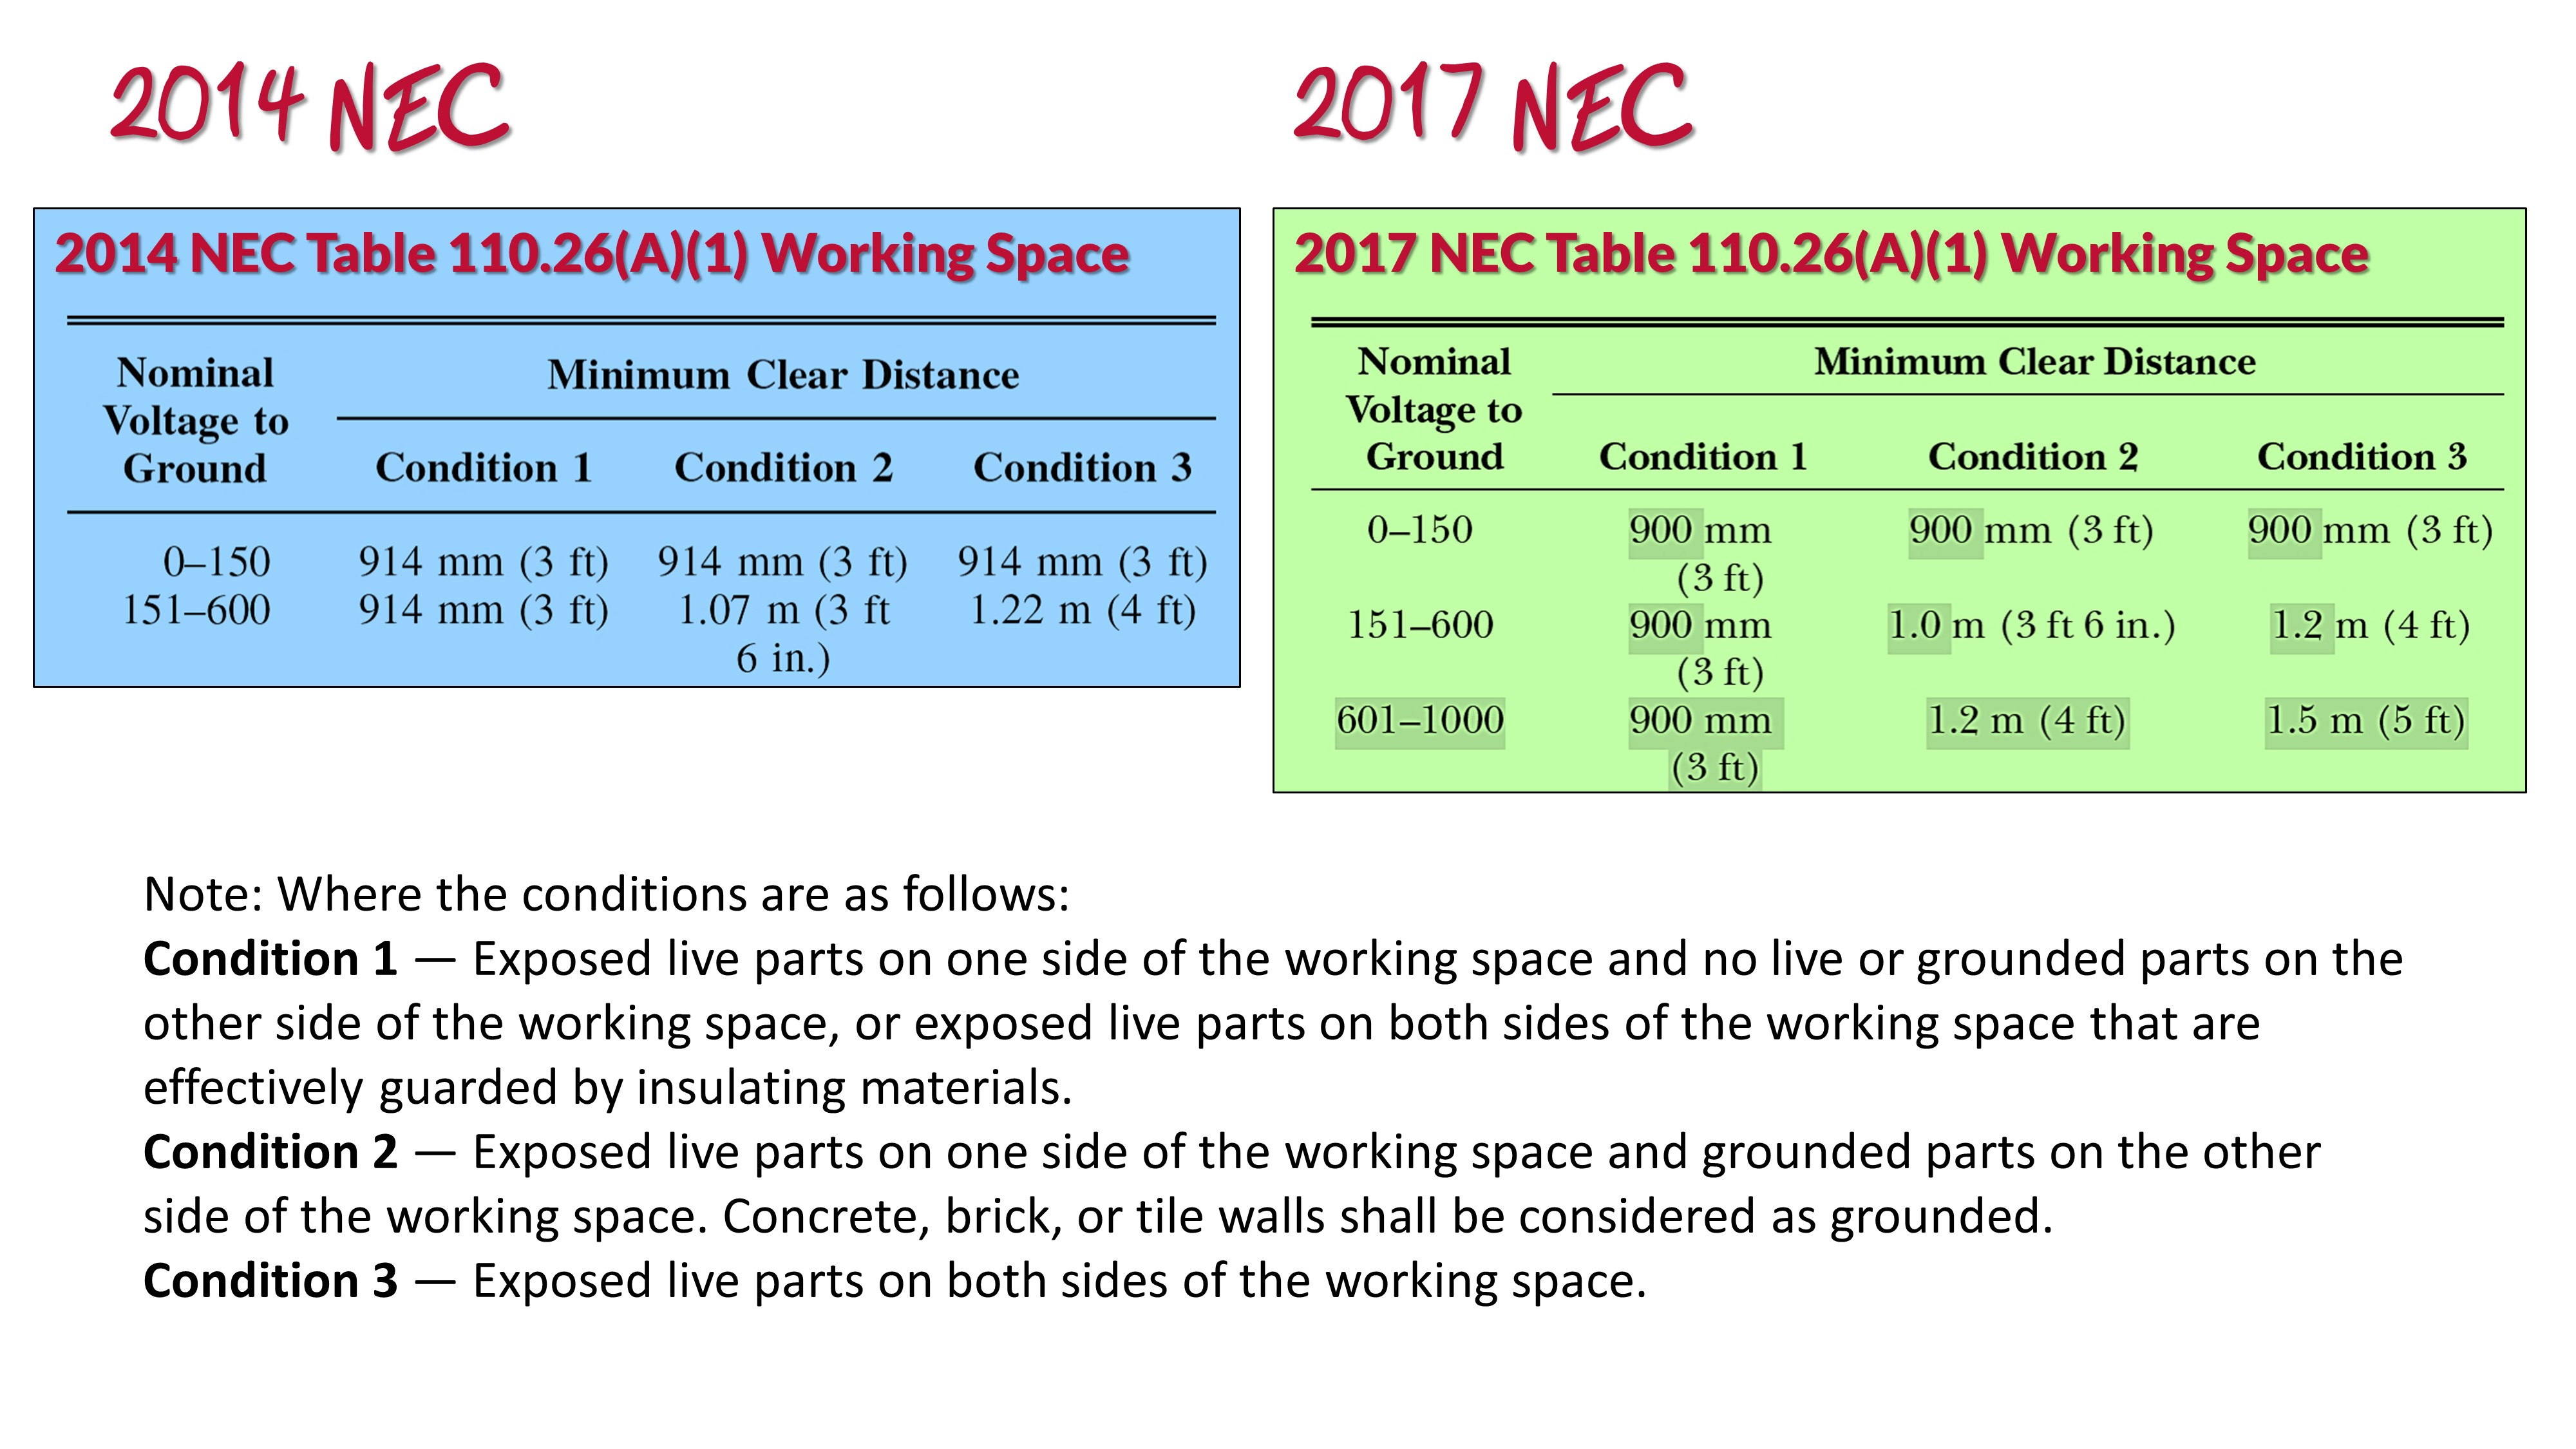 Table 110 26(A)(1) Working Spaces